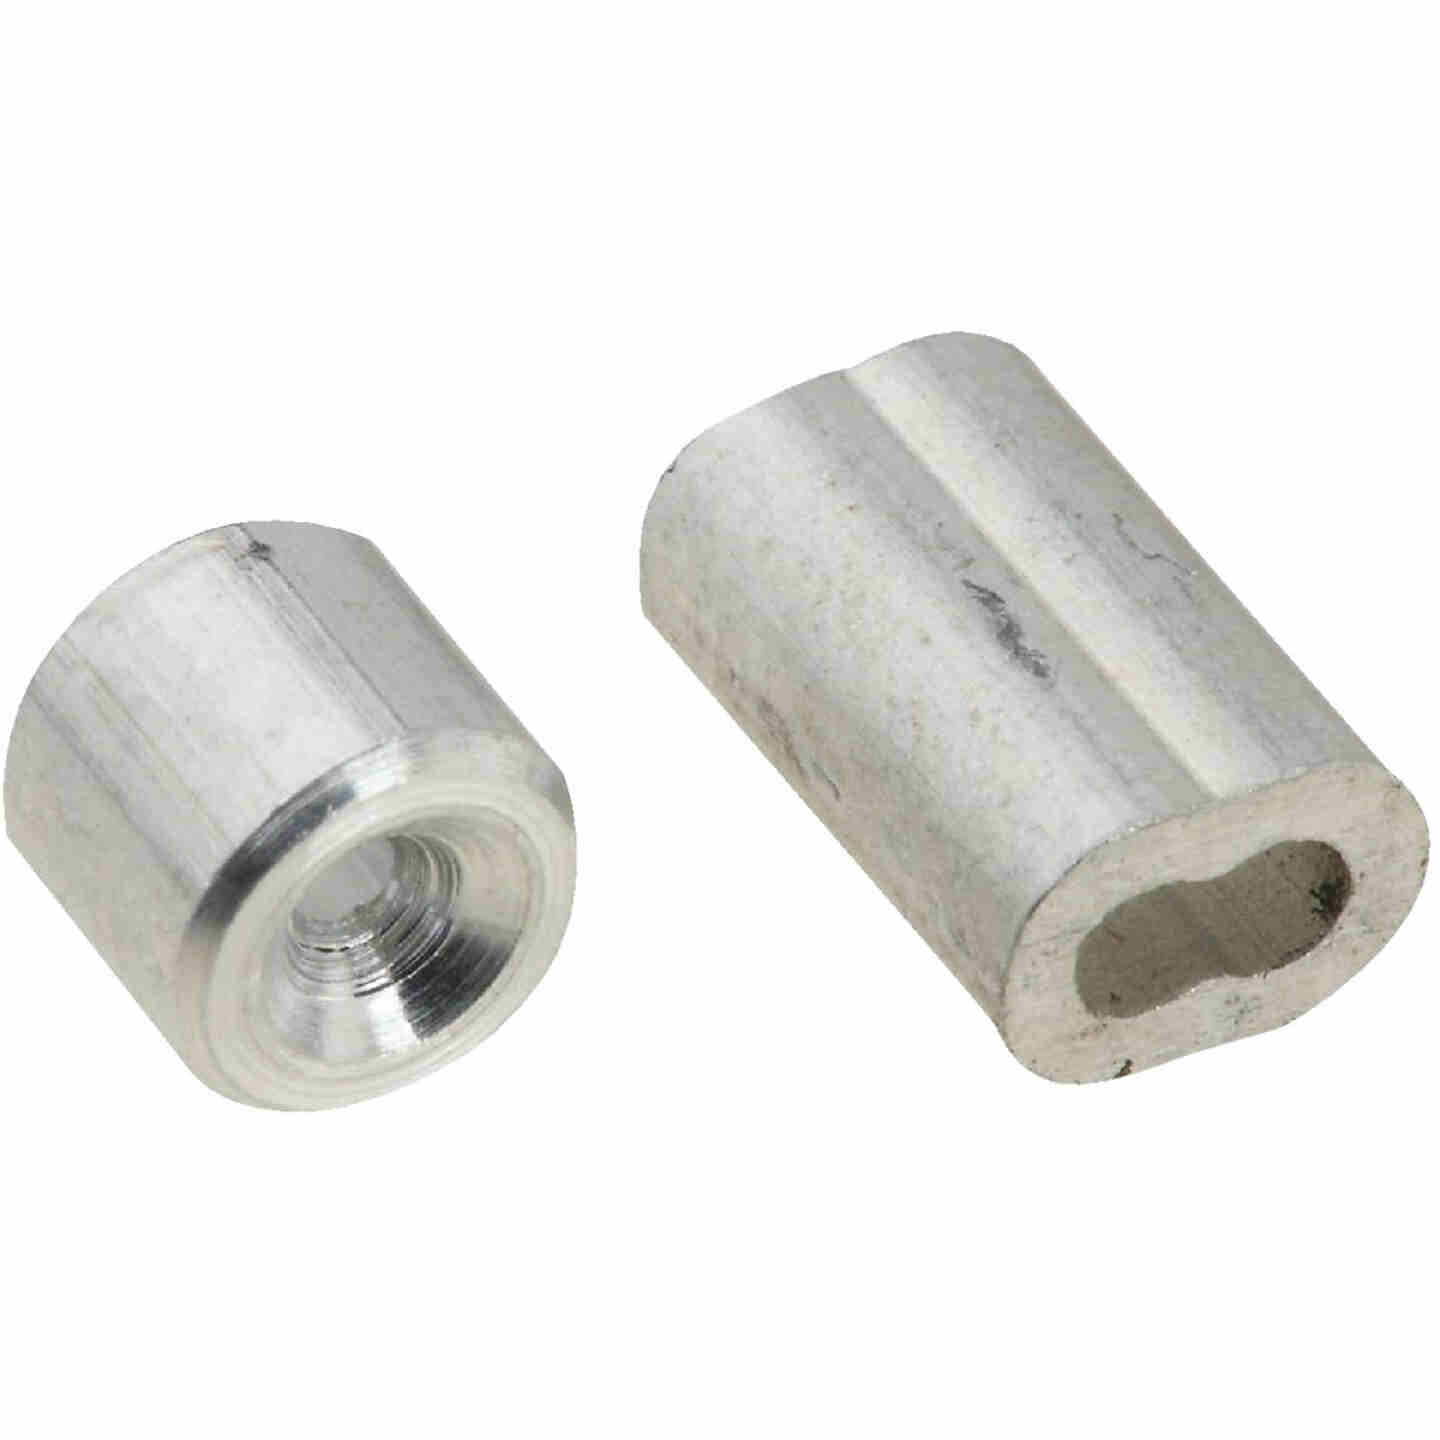 "Prime-Line Cable Ferrules And Stops, 1/16"", Aluminum Image 1"